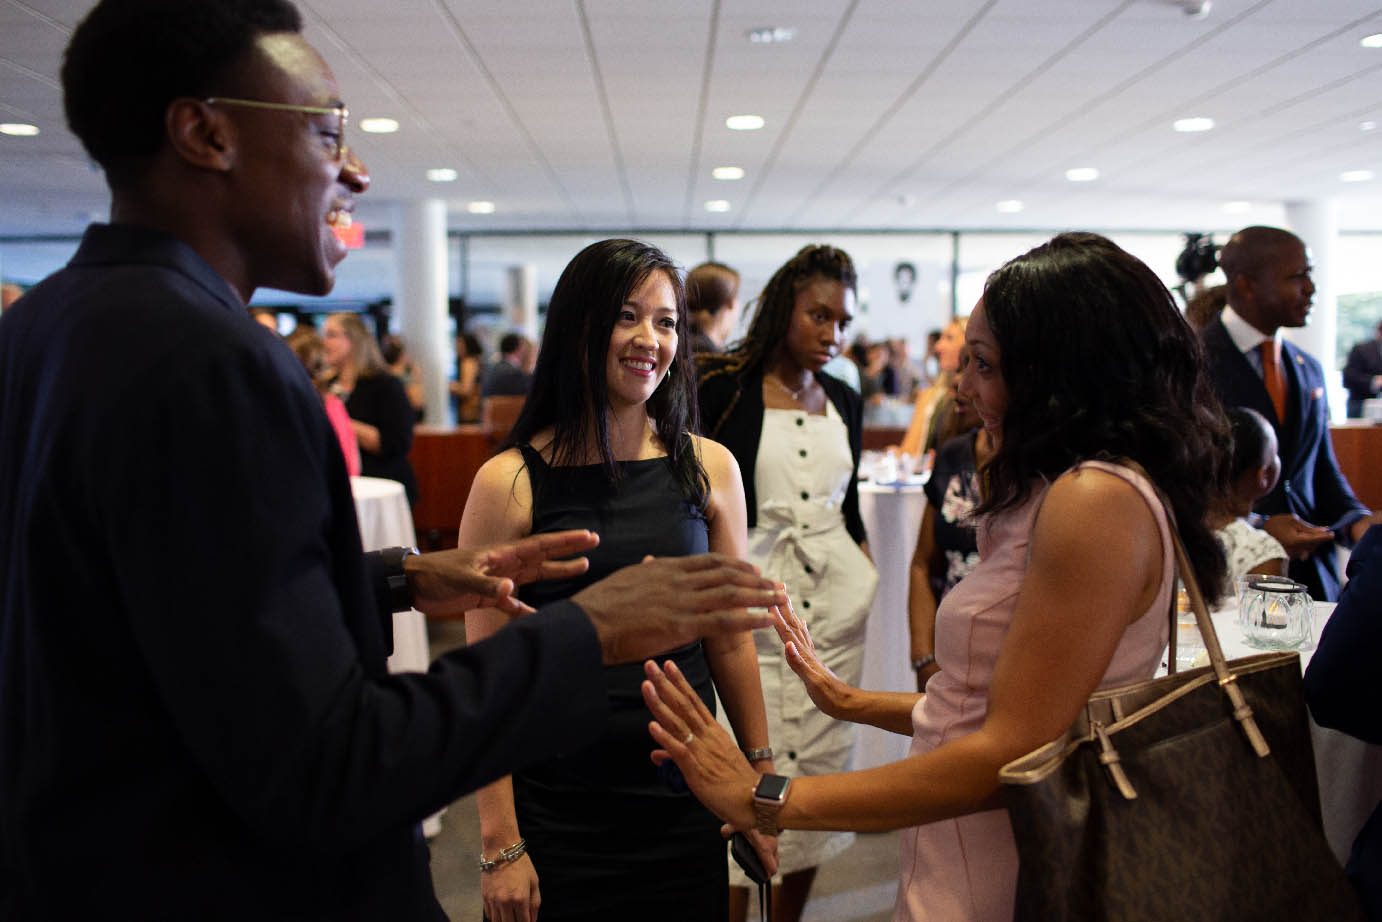 LBJ students chat during the 2019 Outstanding Alumni Awards reception on Sept. 20, 2019